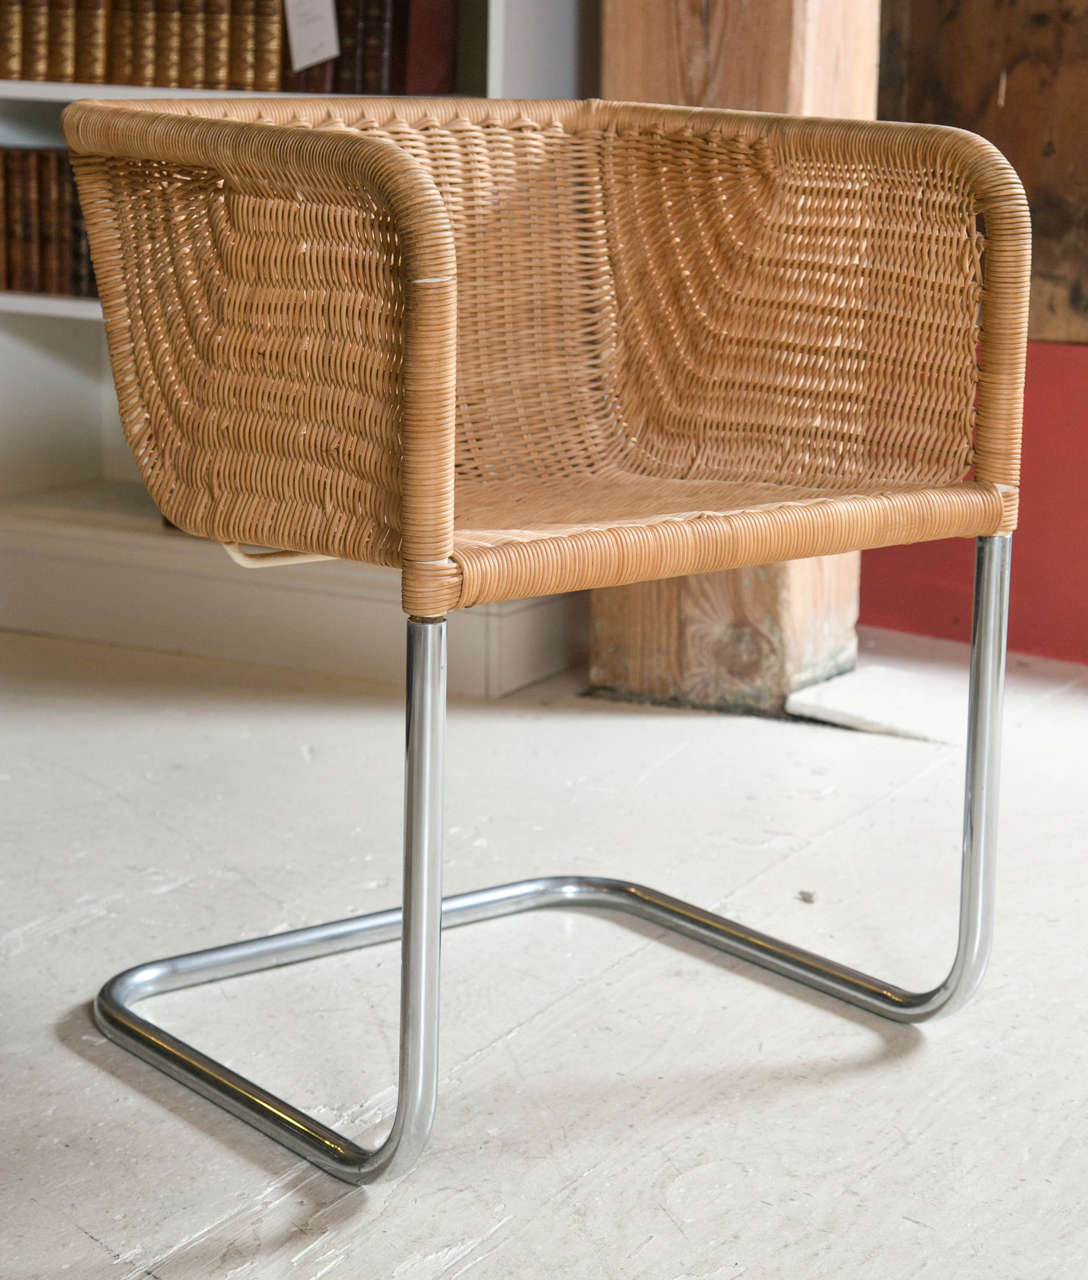 Set Of Four Cantilevered Chrome And Wicker Chairs At 1stdibs